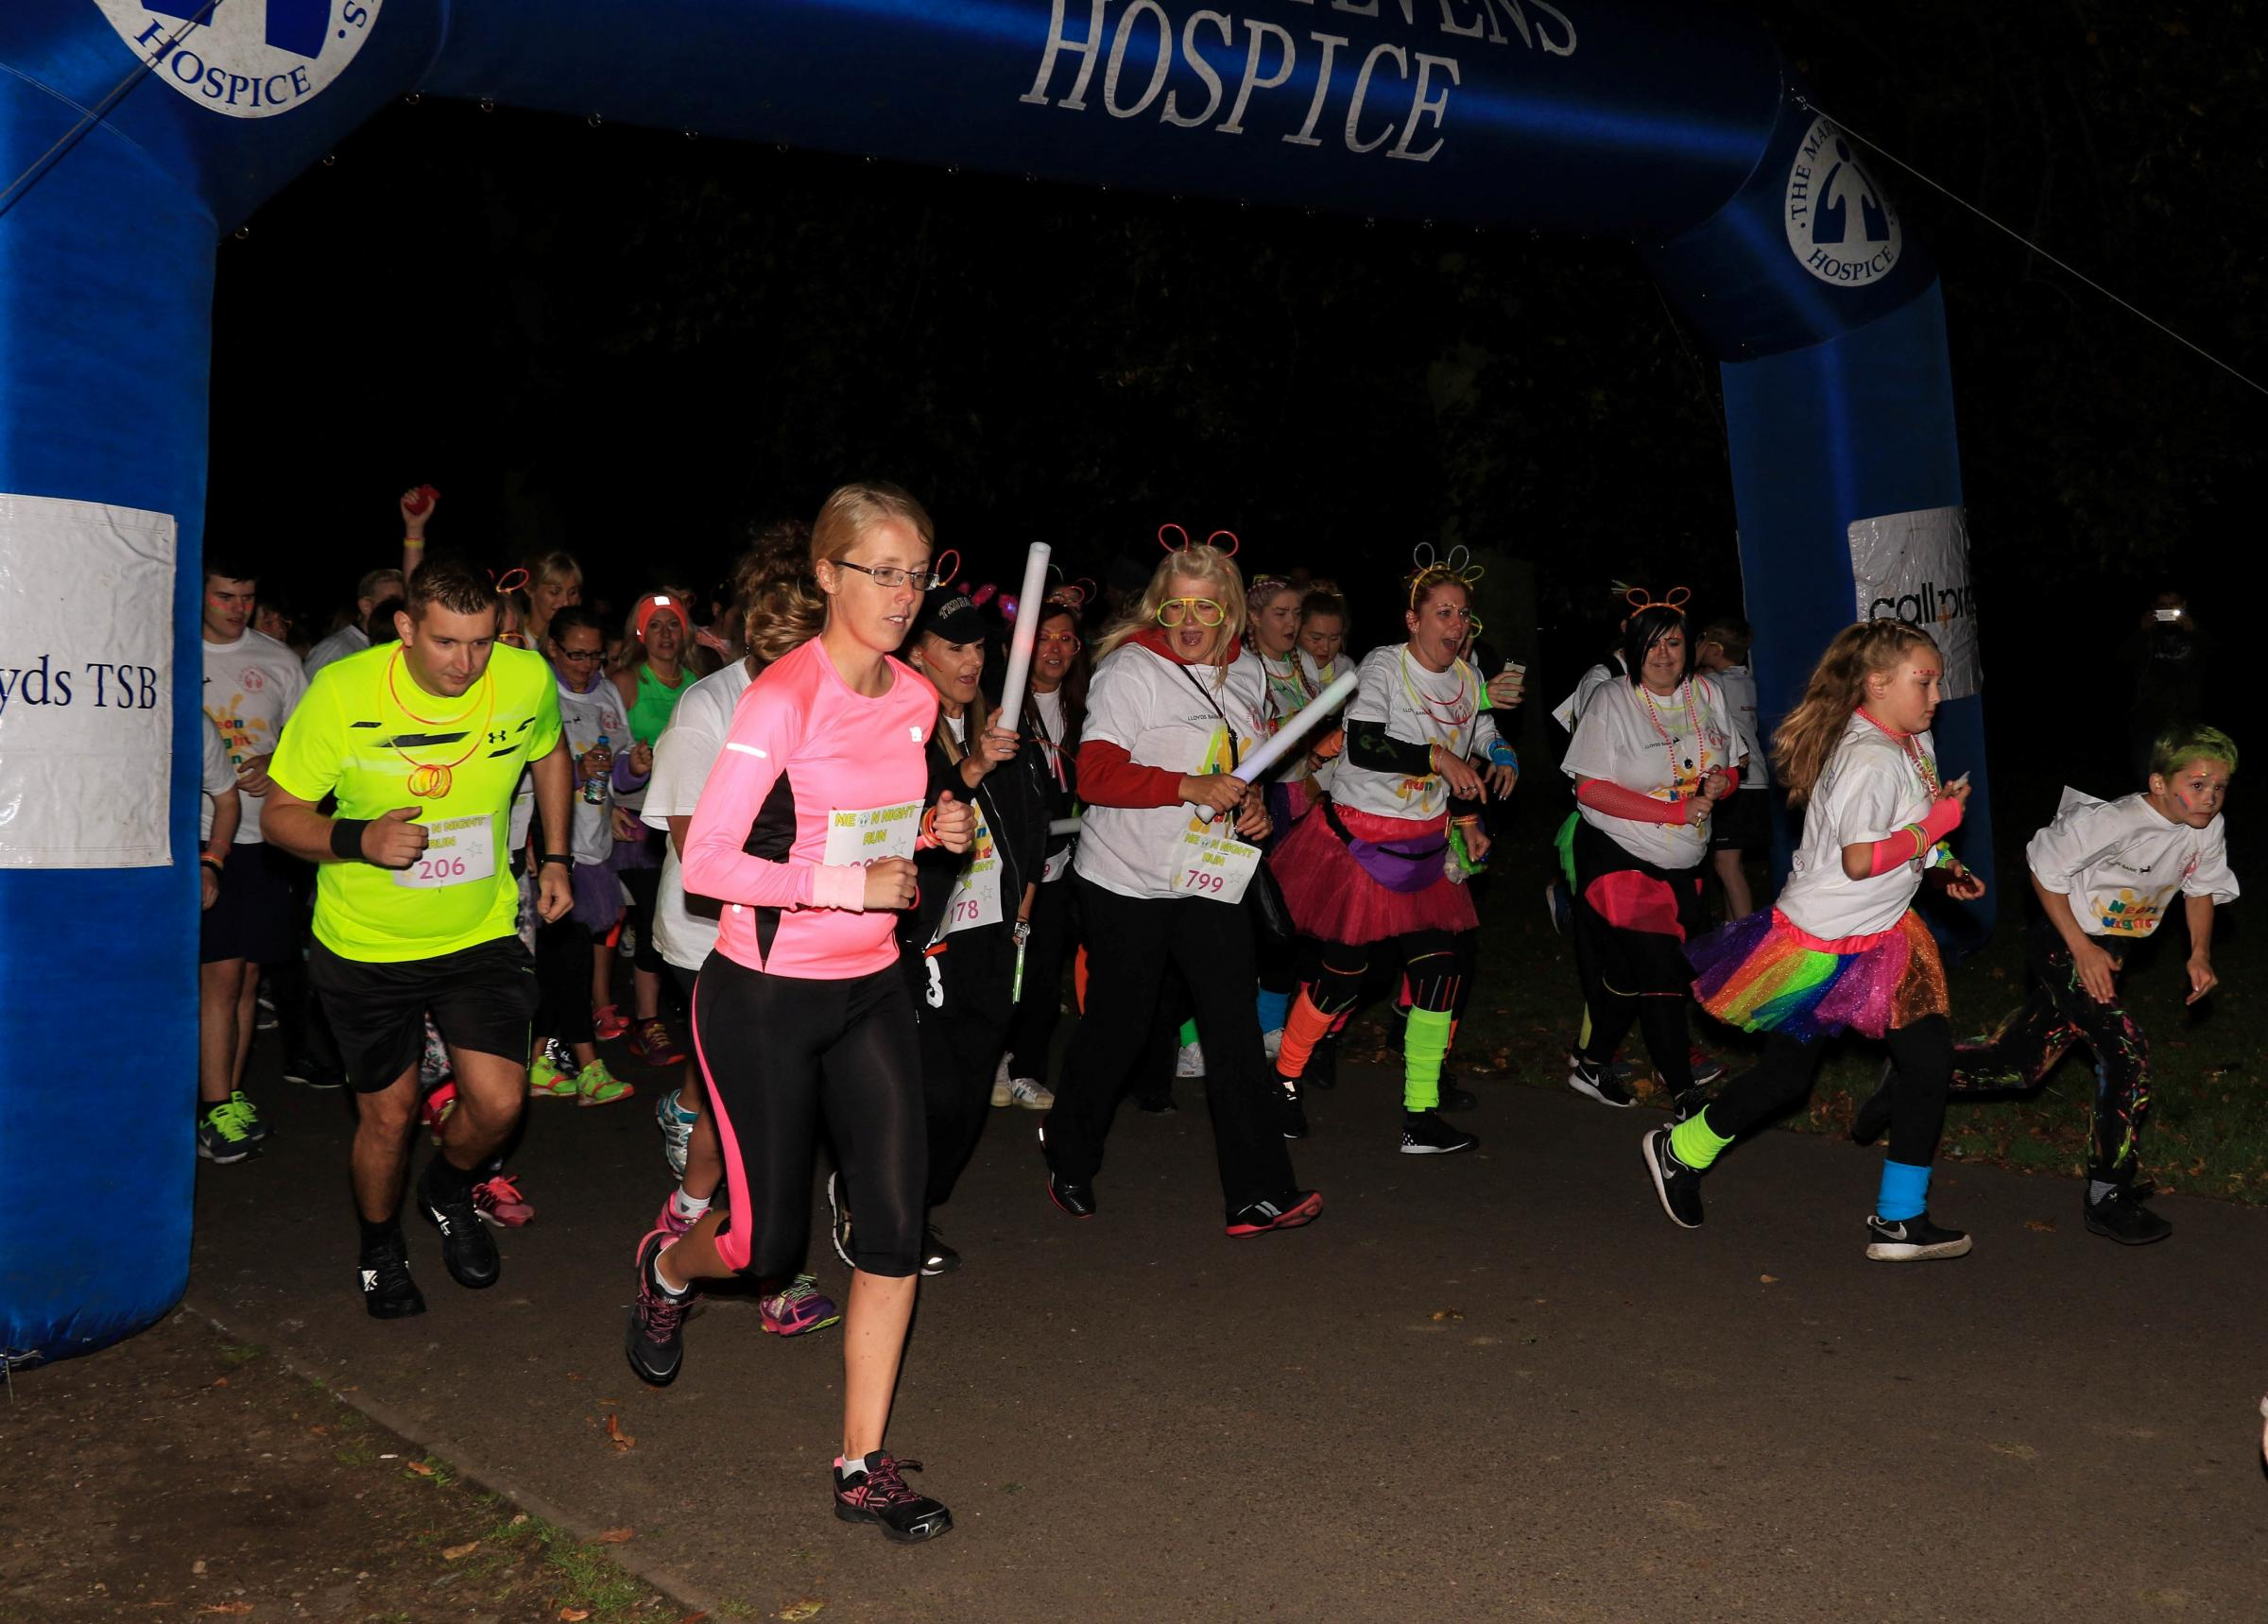 Mary Stevens Hospice's first ever Neon Night saw over 1,200 people raise more than £21,500 for the Hagley Road charity. Photo: Mary Stevens Hospice